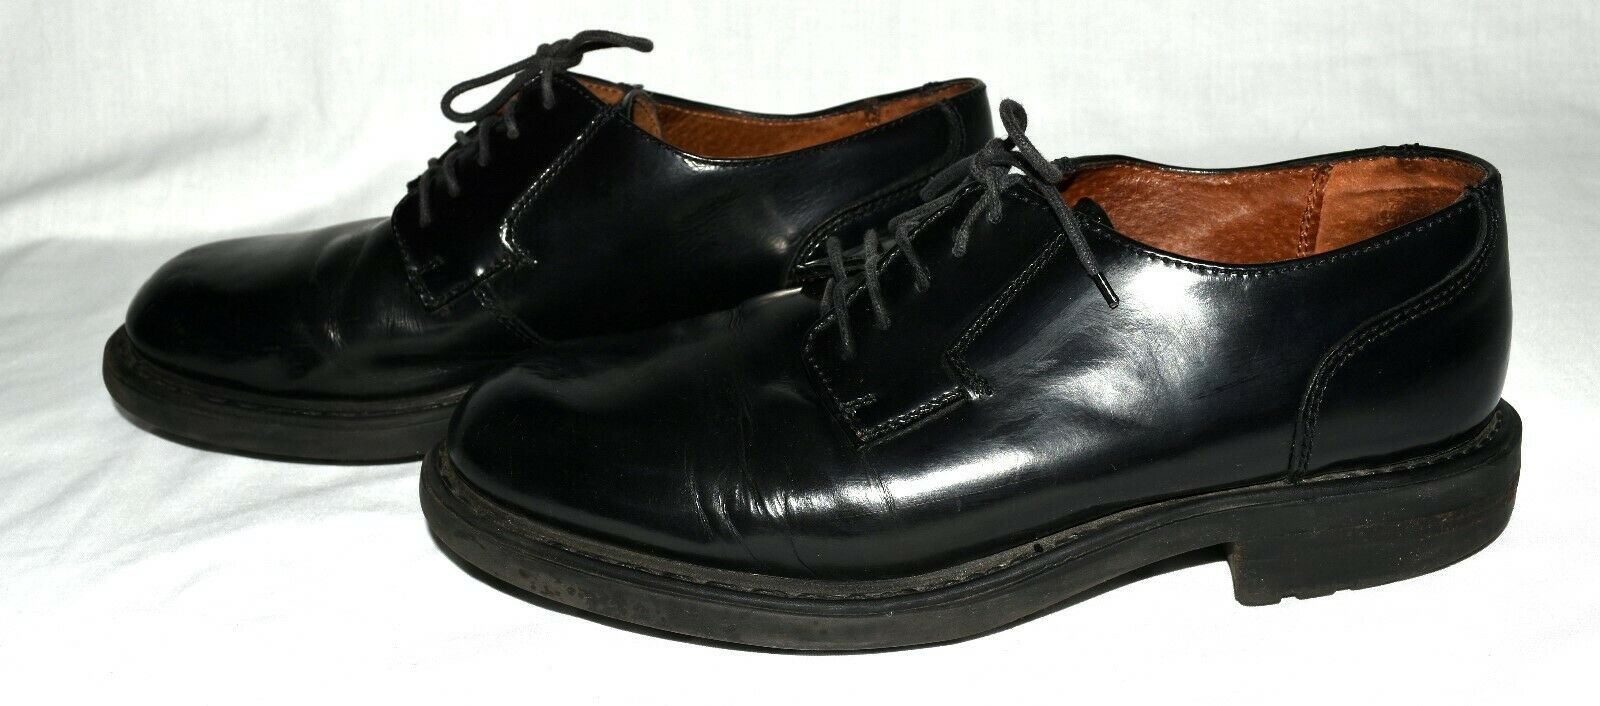 Kenneth Cole Reaction Black Shiny Leather Mens Oxfords Shoes Size 9.5 M